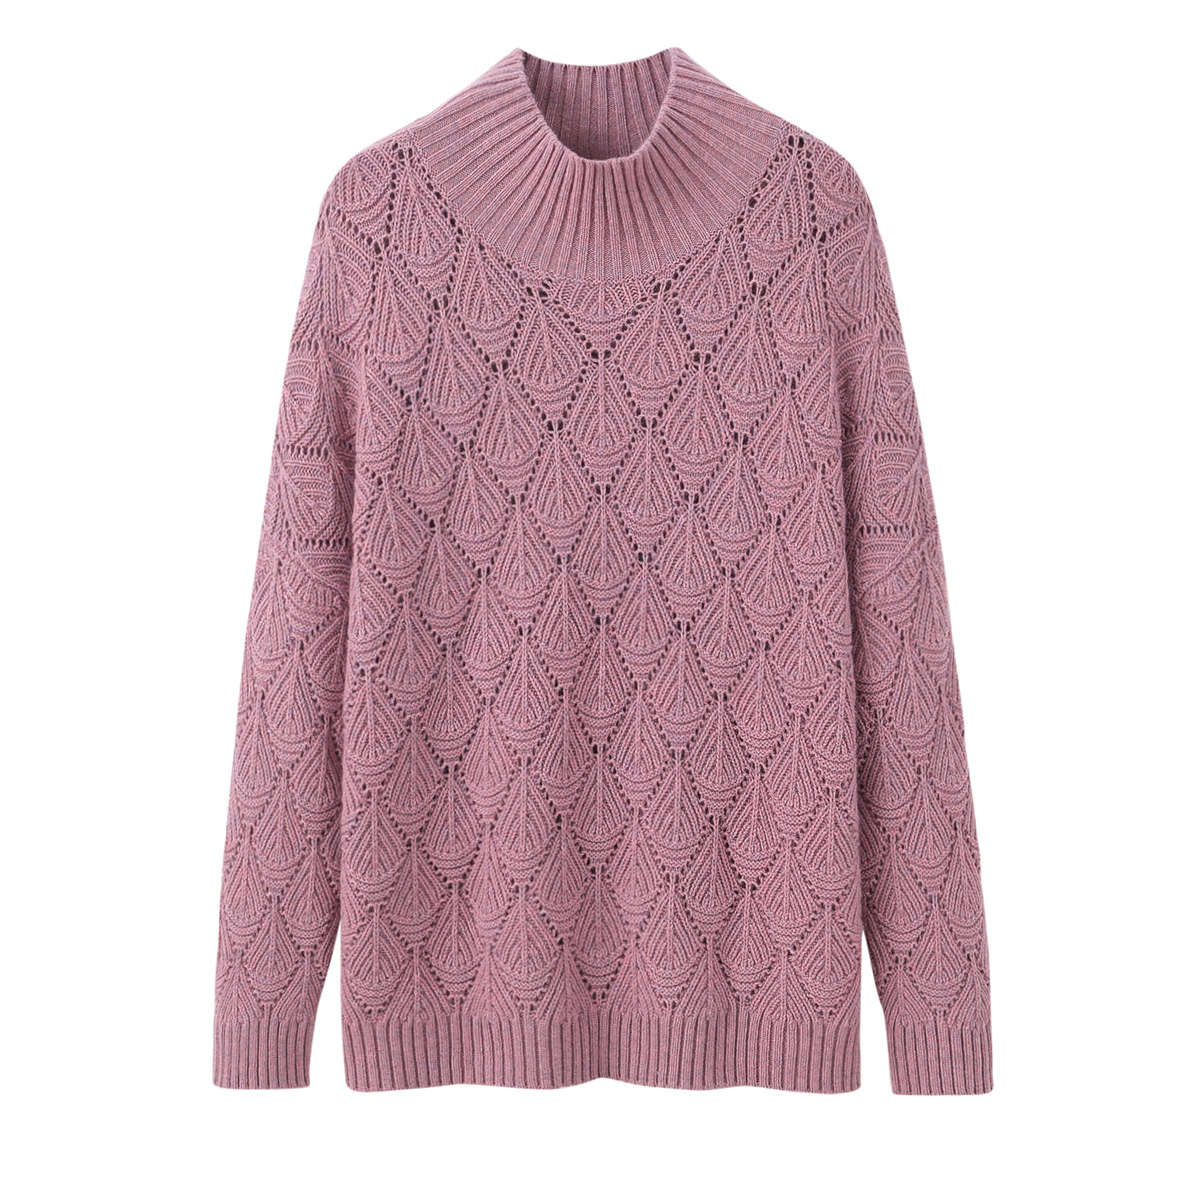 Autumn new cashmere sweater womens half high neck hollow knitting Korean loose bottomed sweater fashion long sleeve sweater